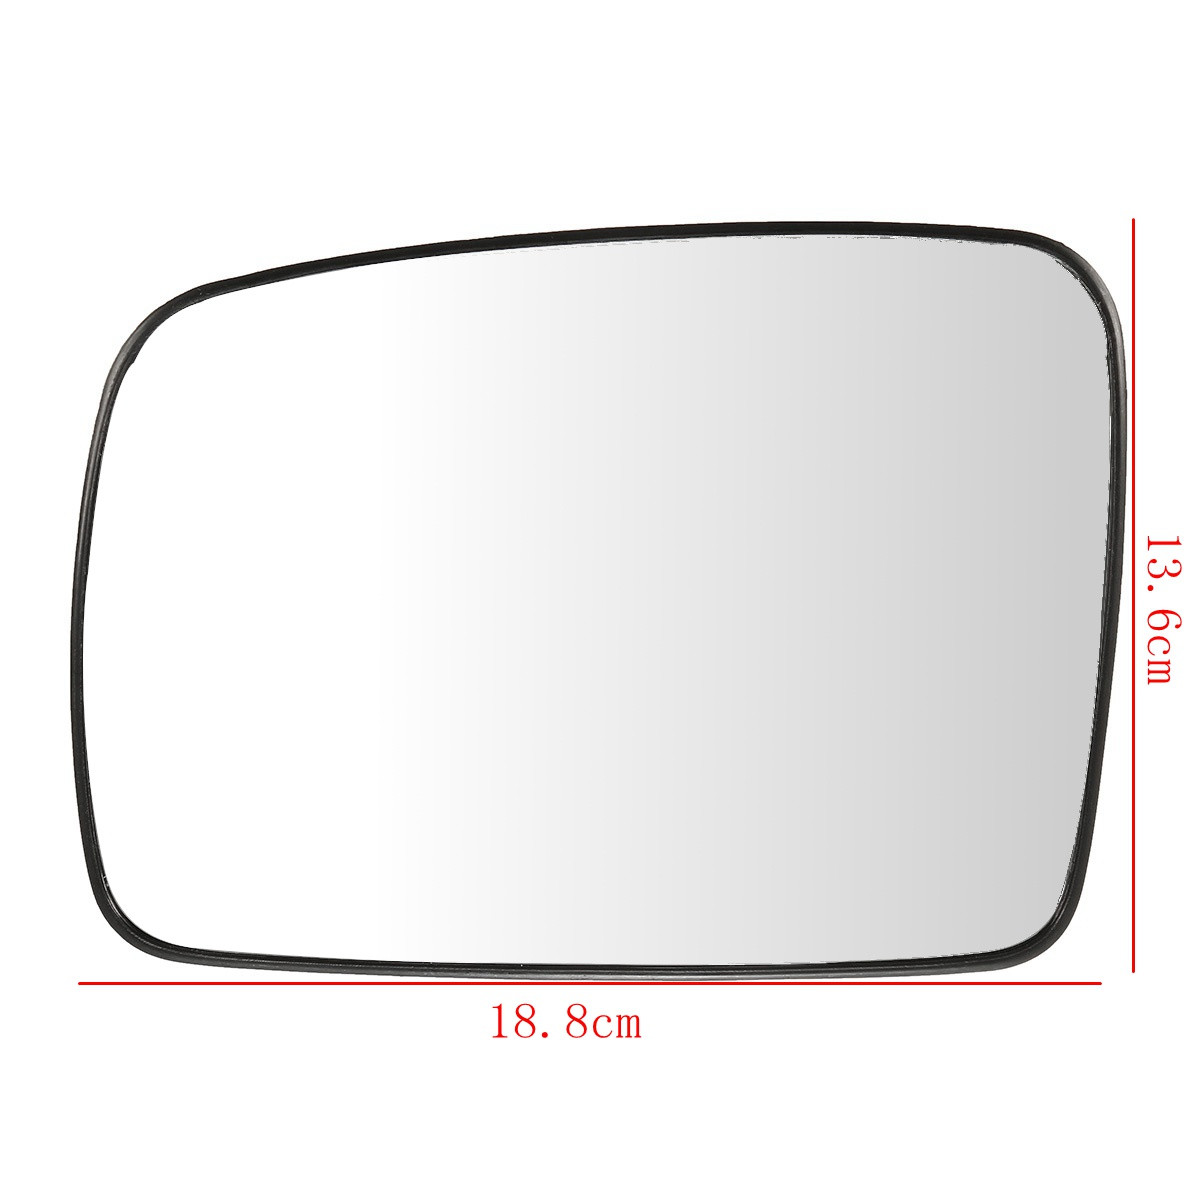 Left Passenger Near Side Wide Angle Wing Mirror Glass for HONDA FR-V 2004-2009